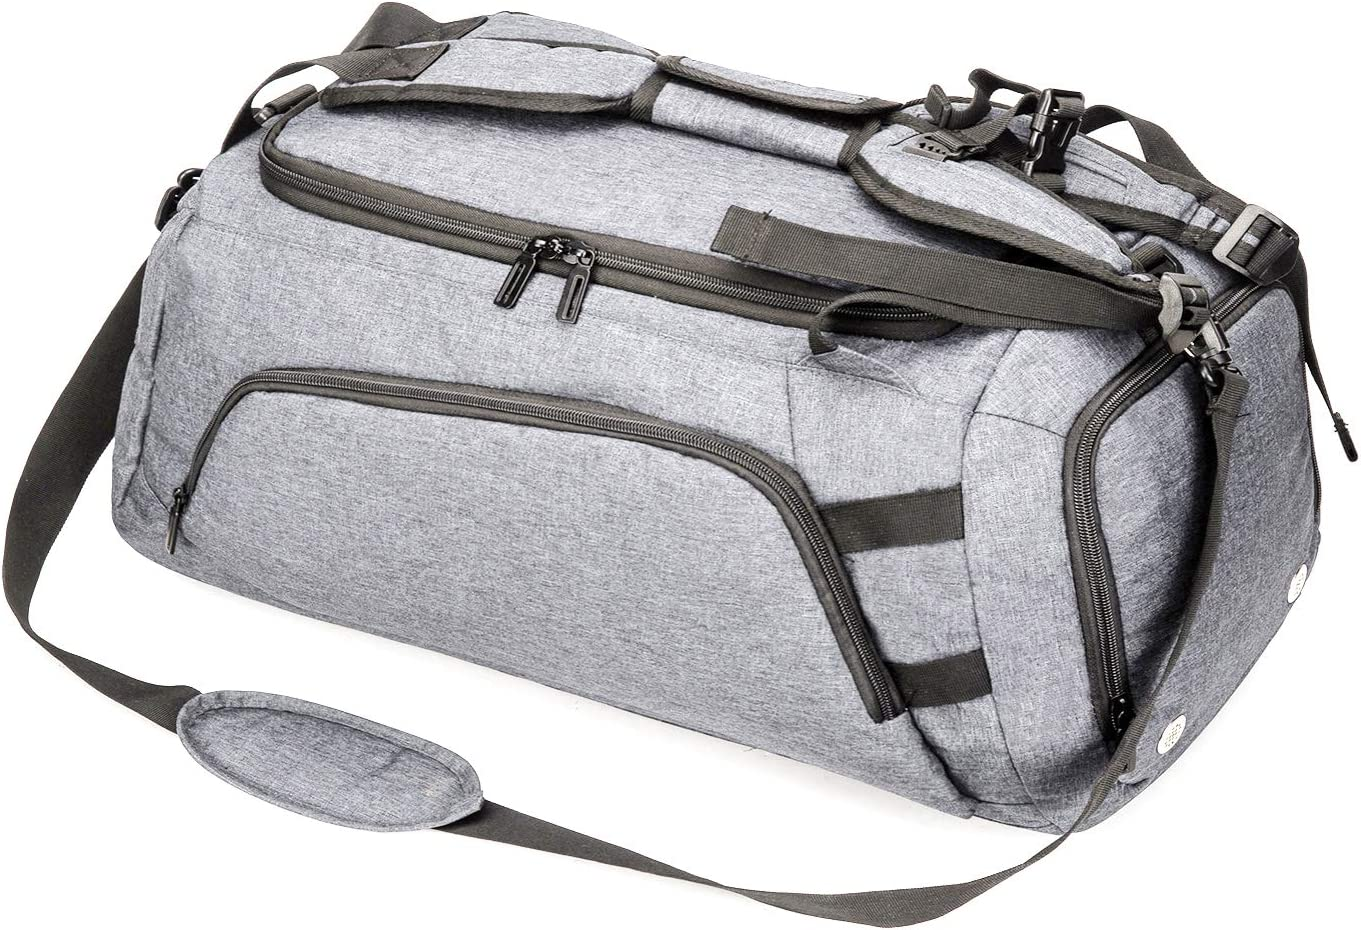 ACECHA Sports Gym Bag with Shoes Compartment Travel Duffel Bag for Men Gray